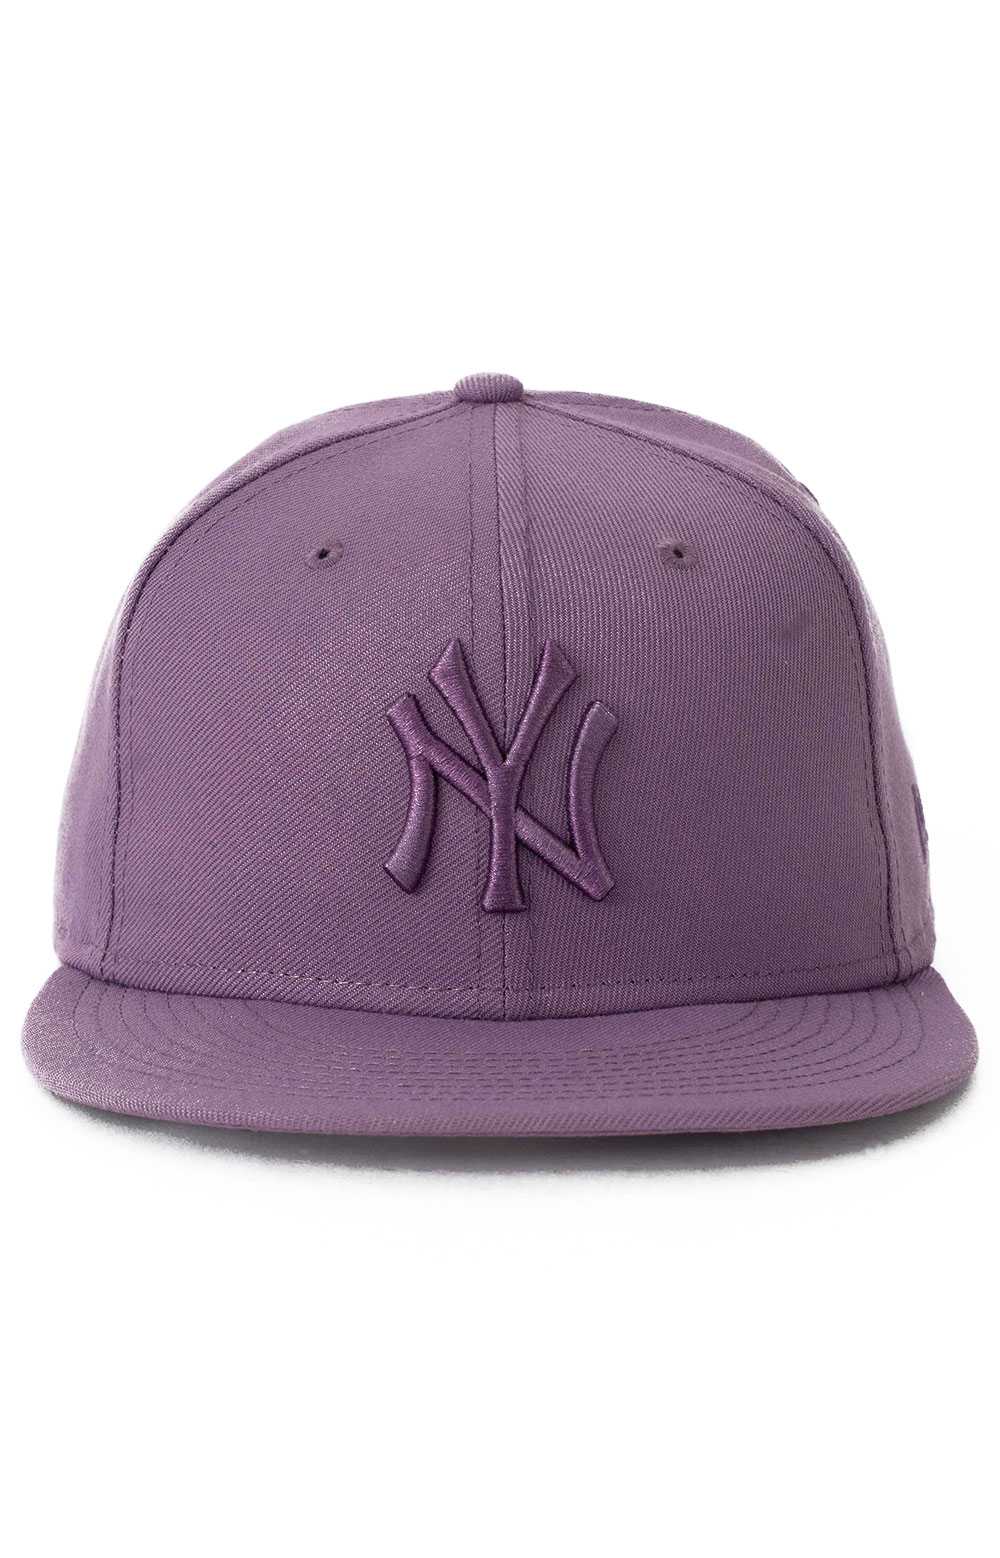 9Fifty Color Pack Snap-Back Hat - NY Yankees Purple  2